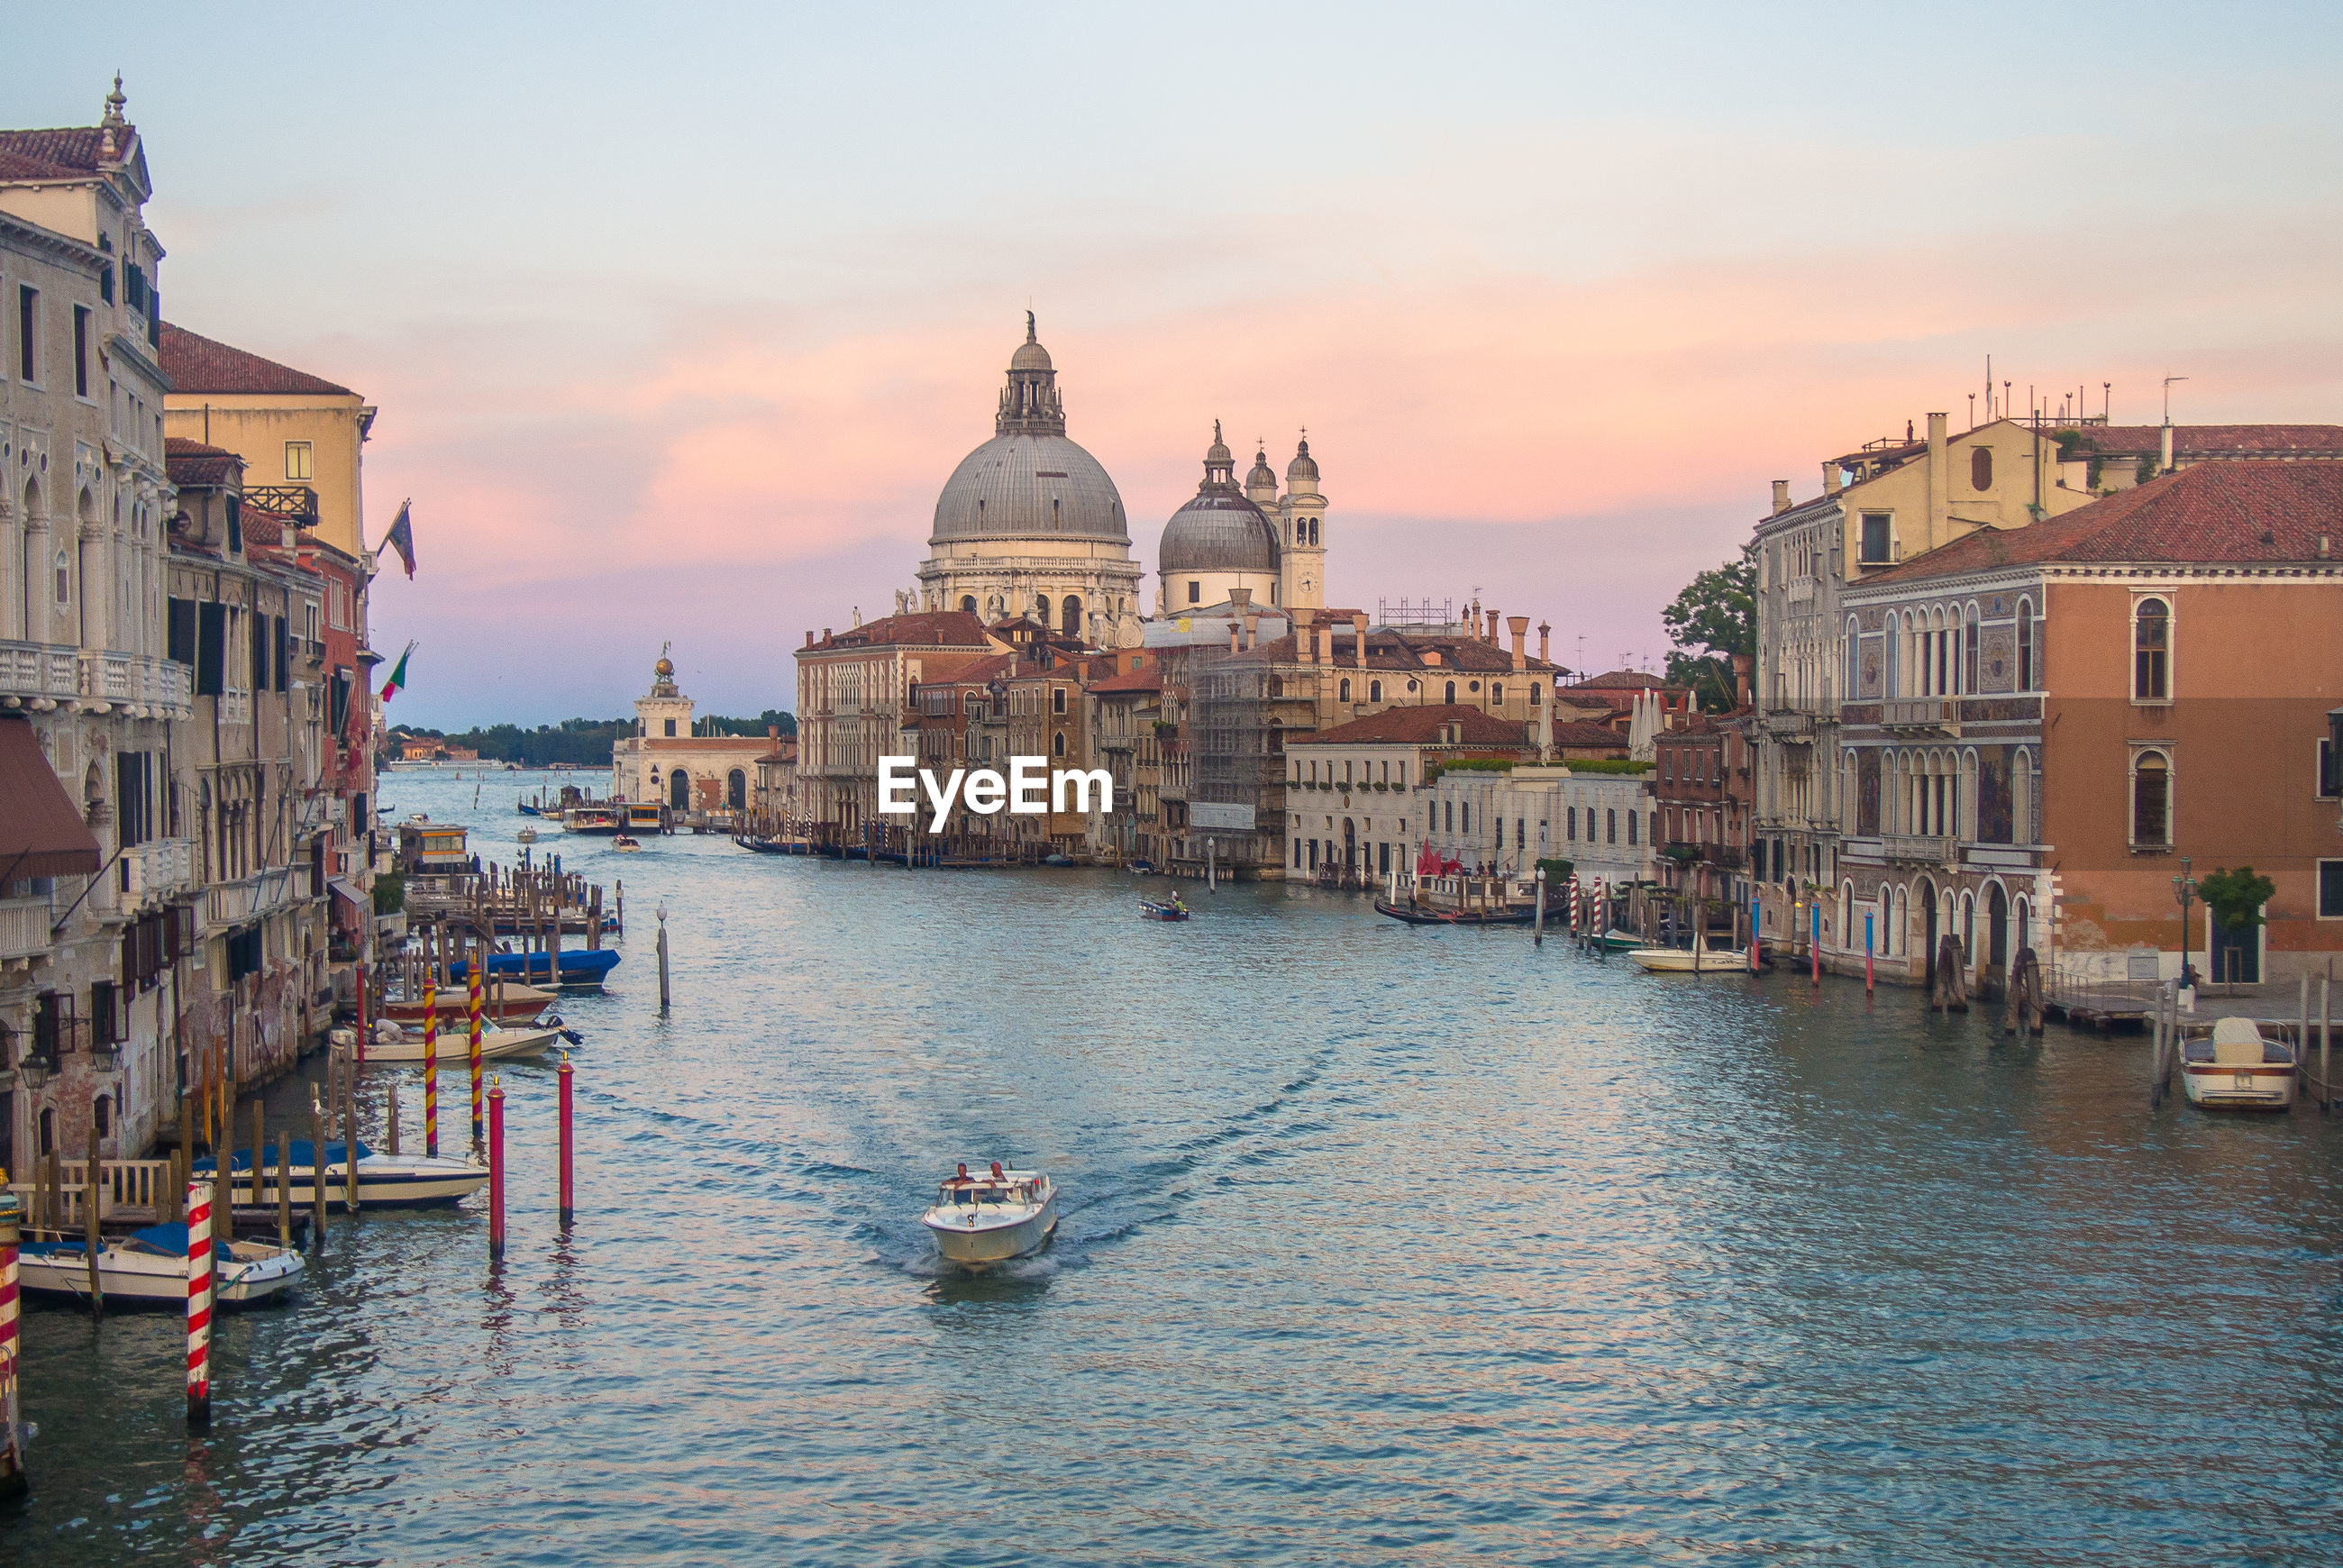 Motorboat sailing on grand canal by santa maria della salute against sky during sunset